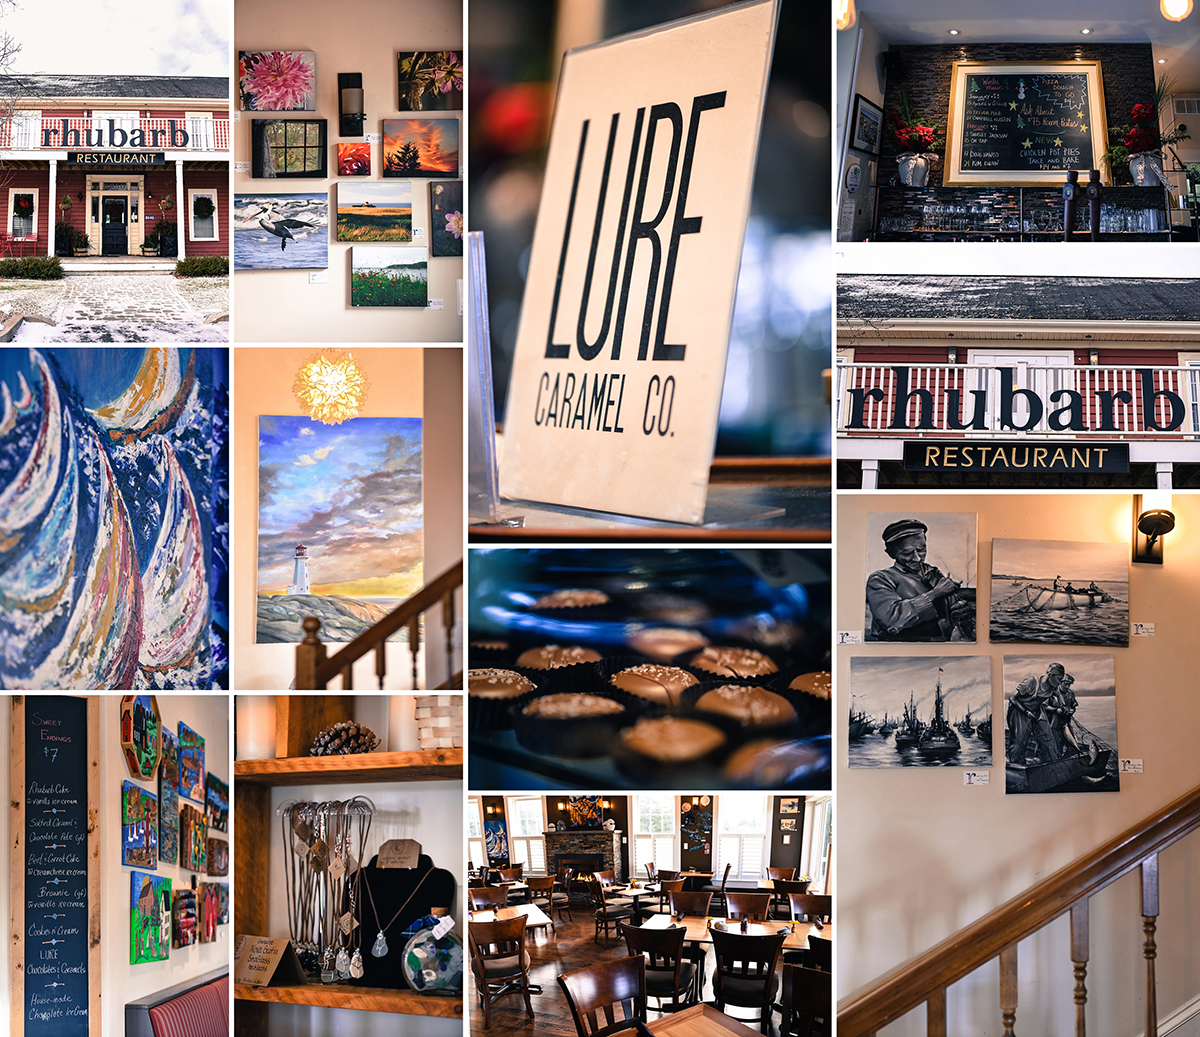 Lure Chocolates, Rhubarb Restaurant and Gallery